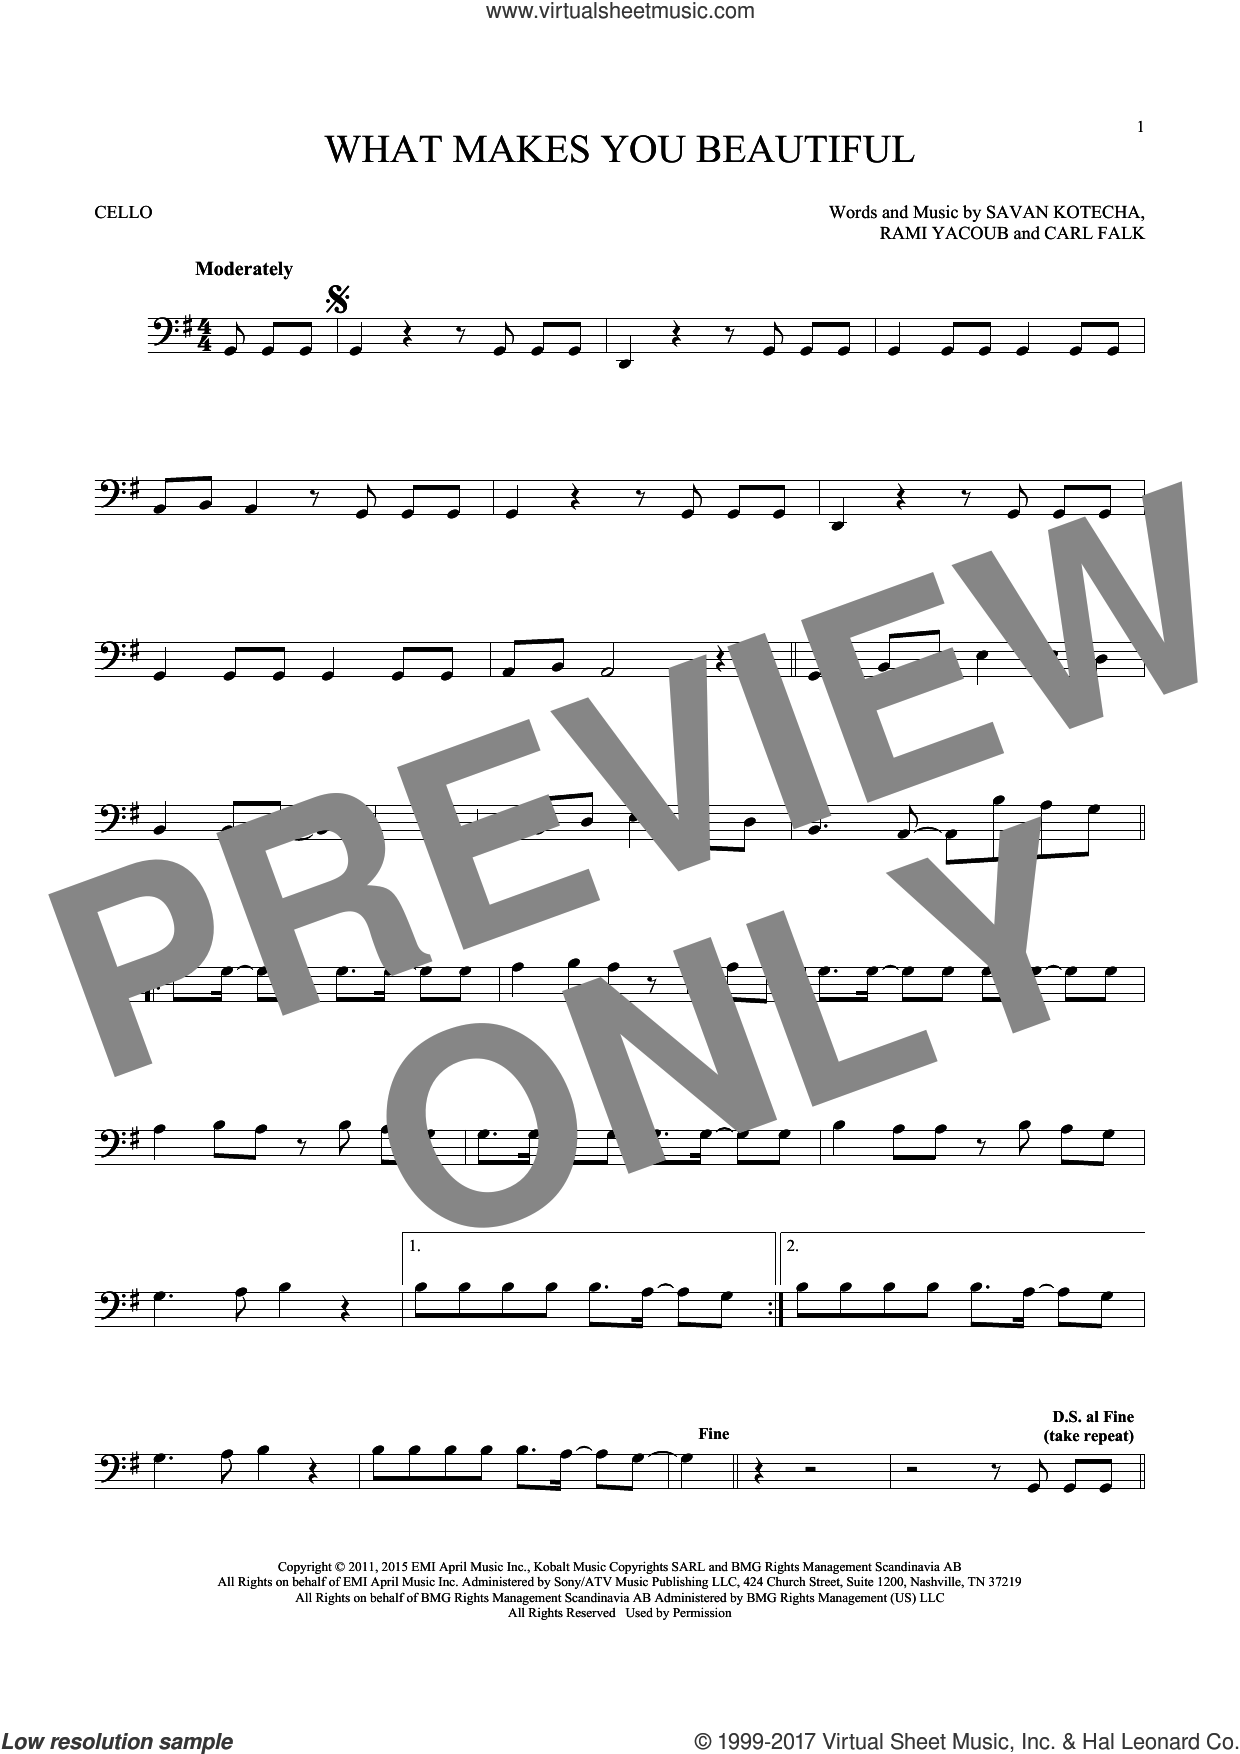 What Makes You Beautiful sheet music for cello solo by One Direction, Carl Falk, Rami and Savan Kotecha, intermediate